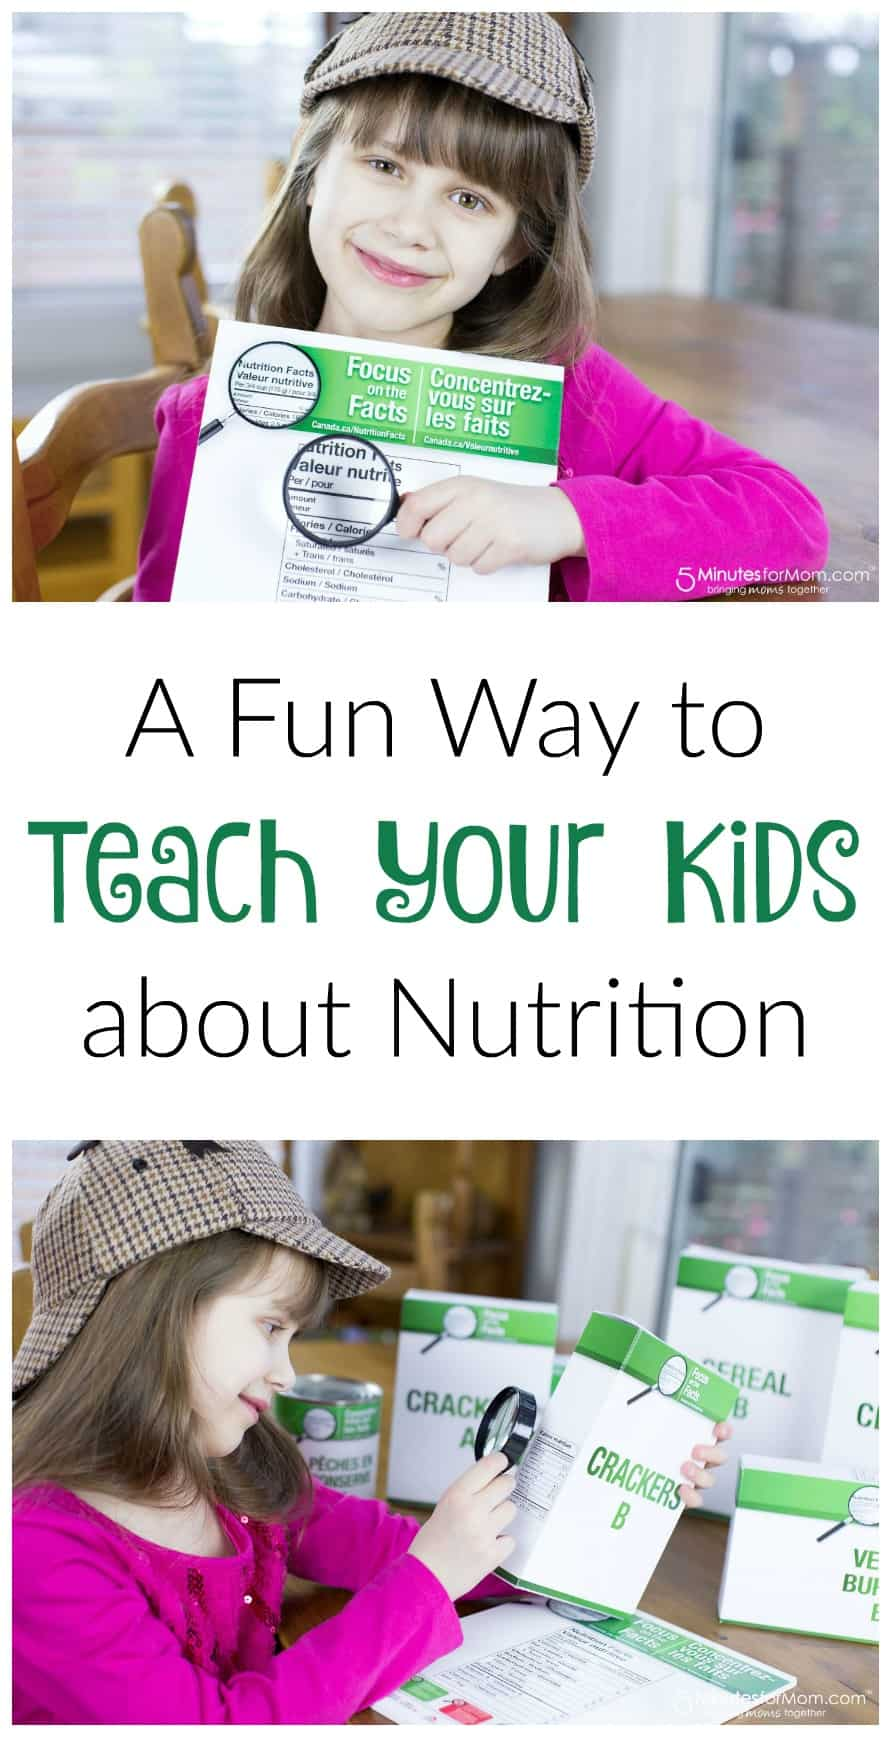 Fun way to teach your kids about nutrition